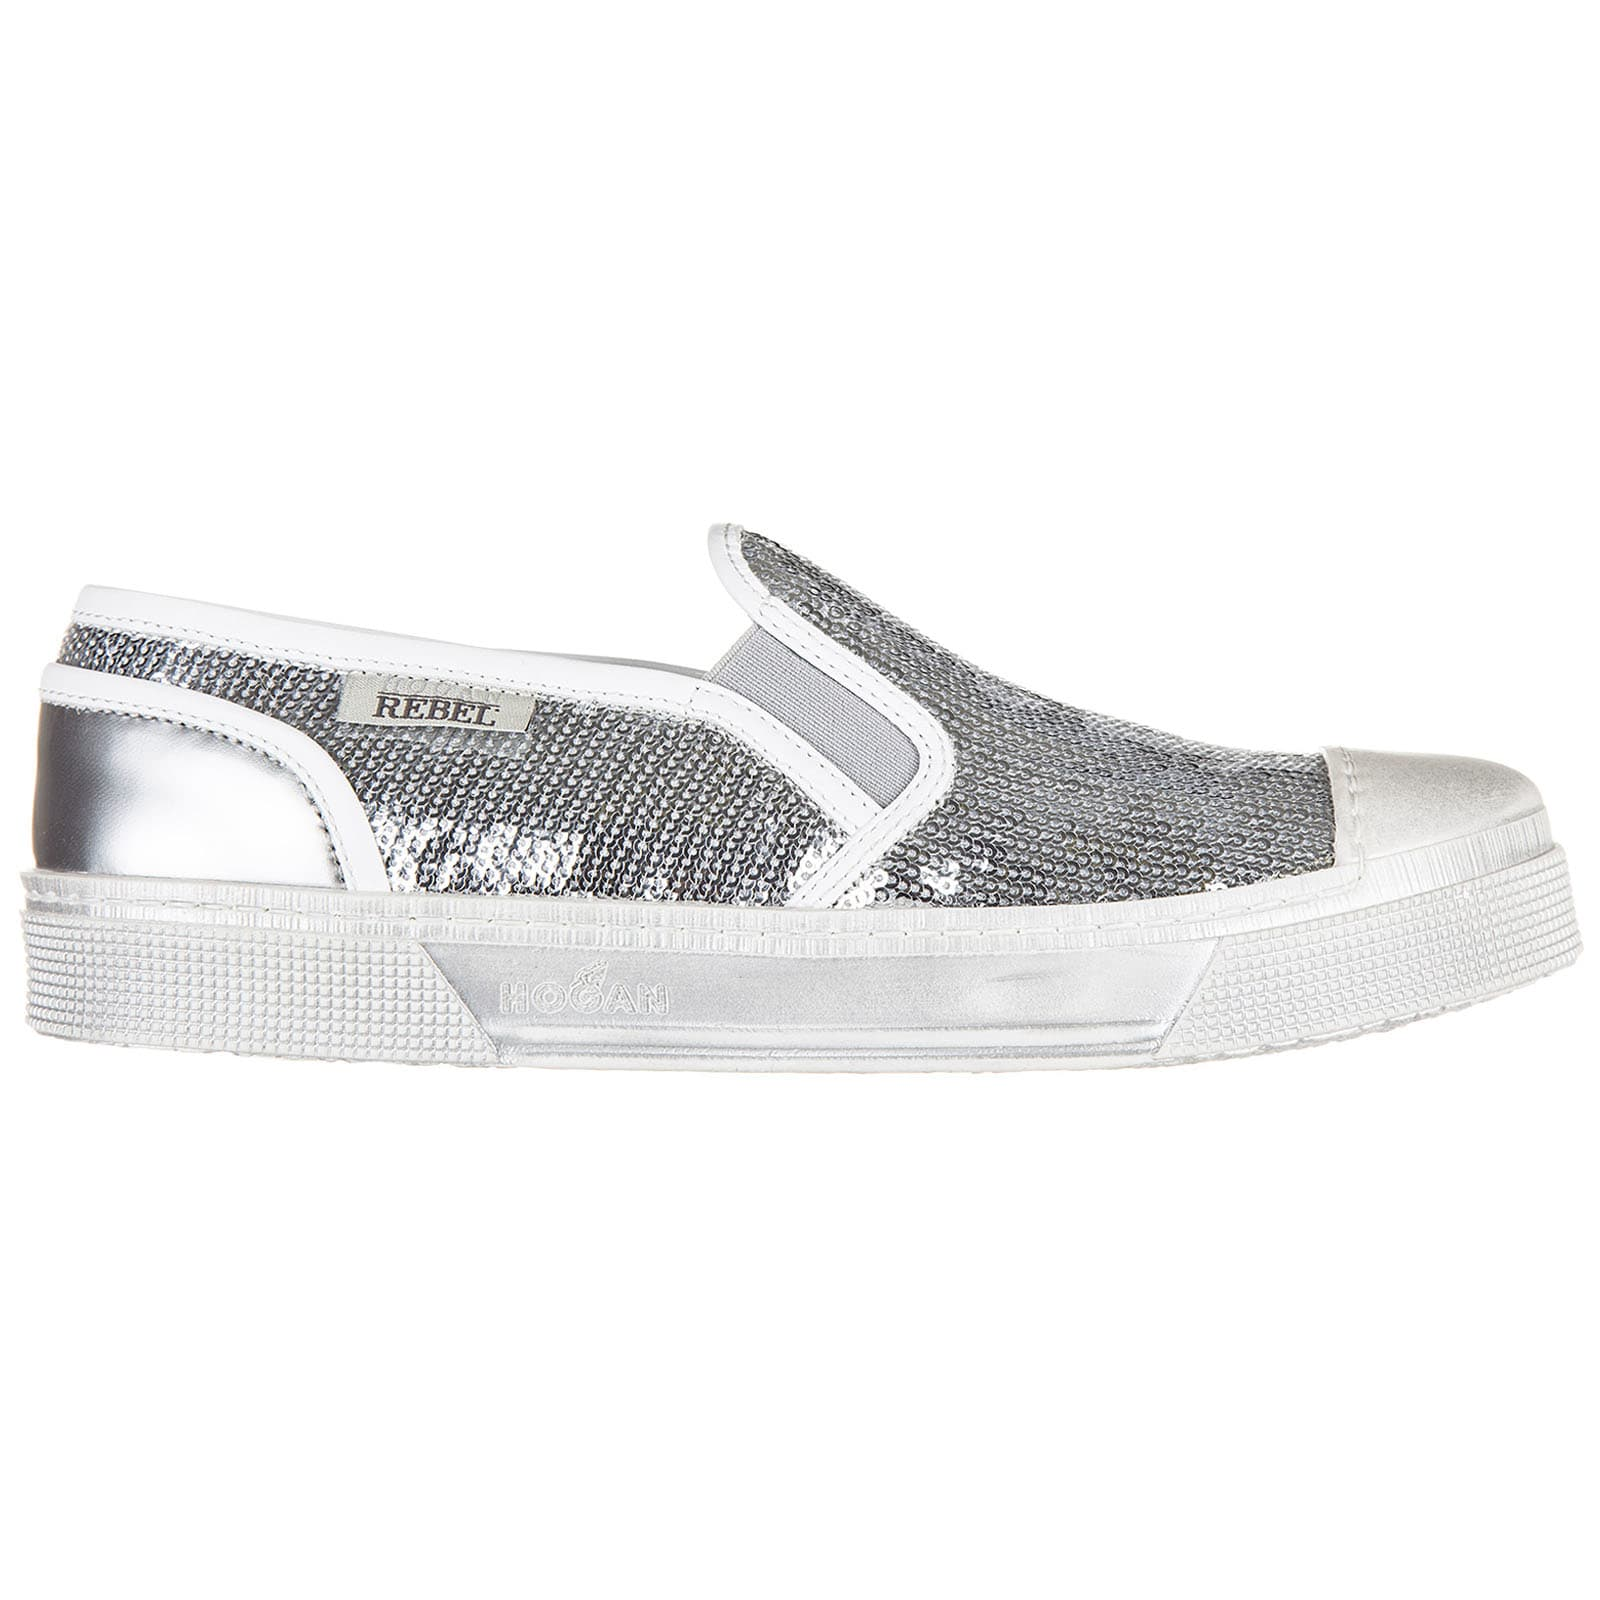 R289 Slip-on Shoes